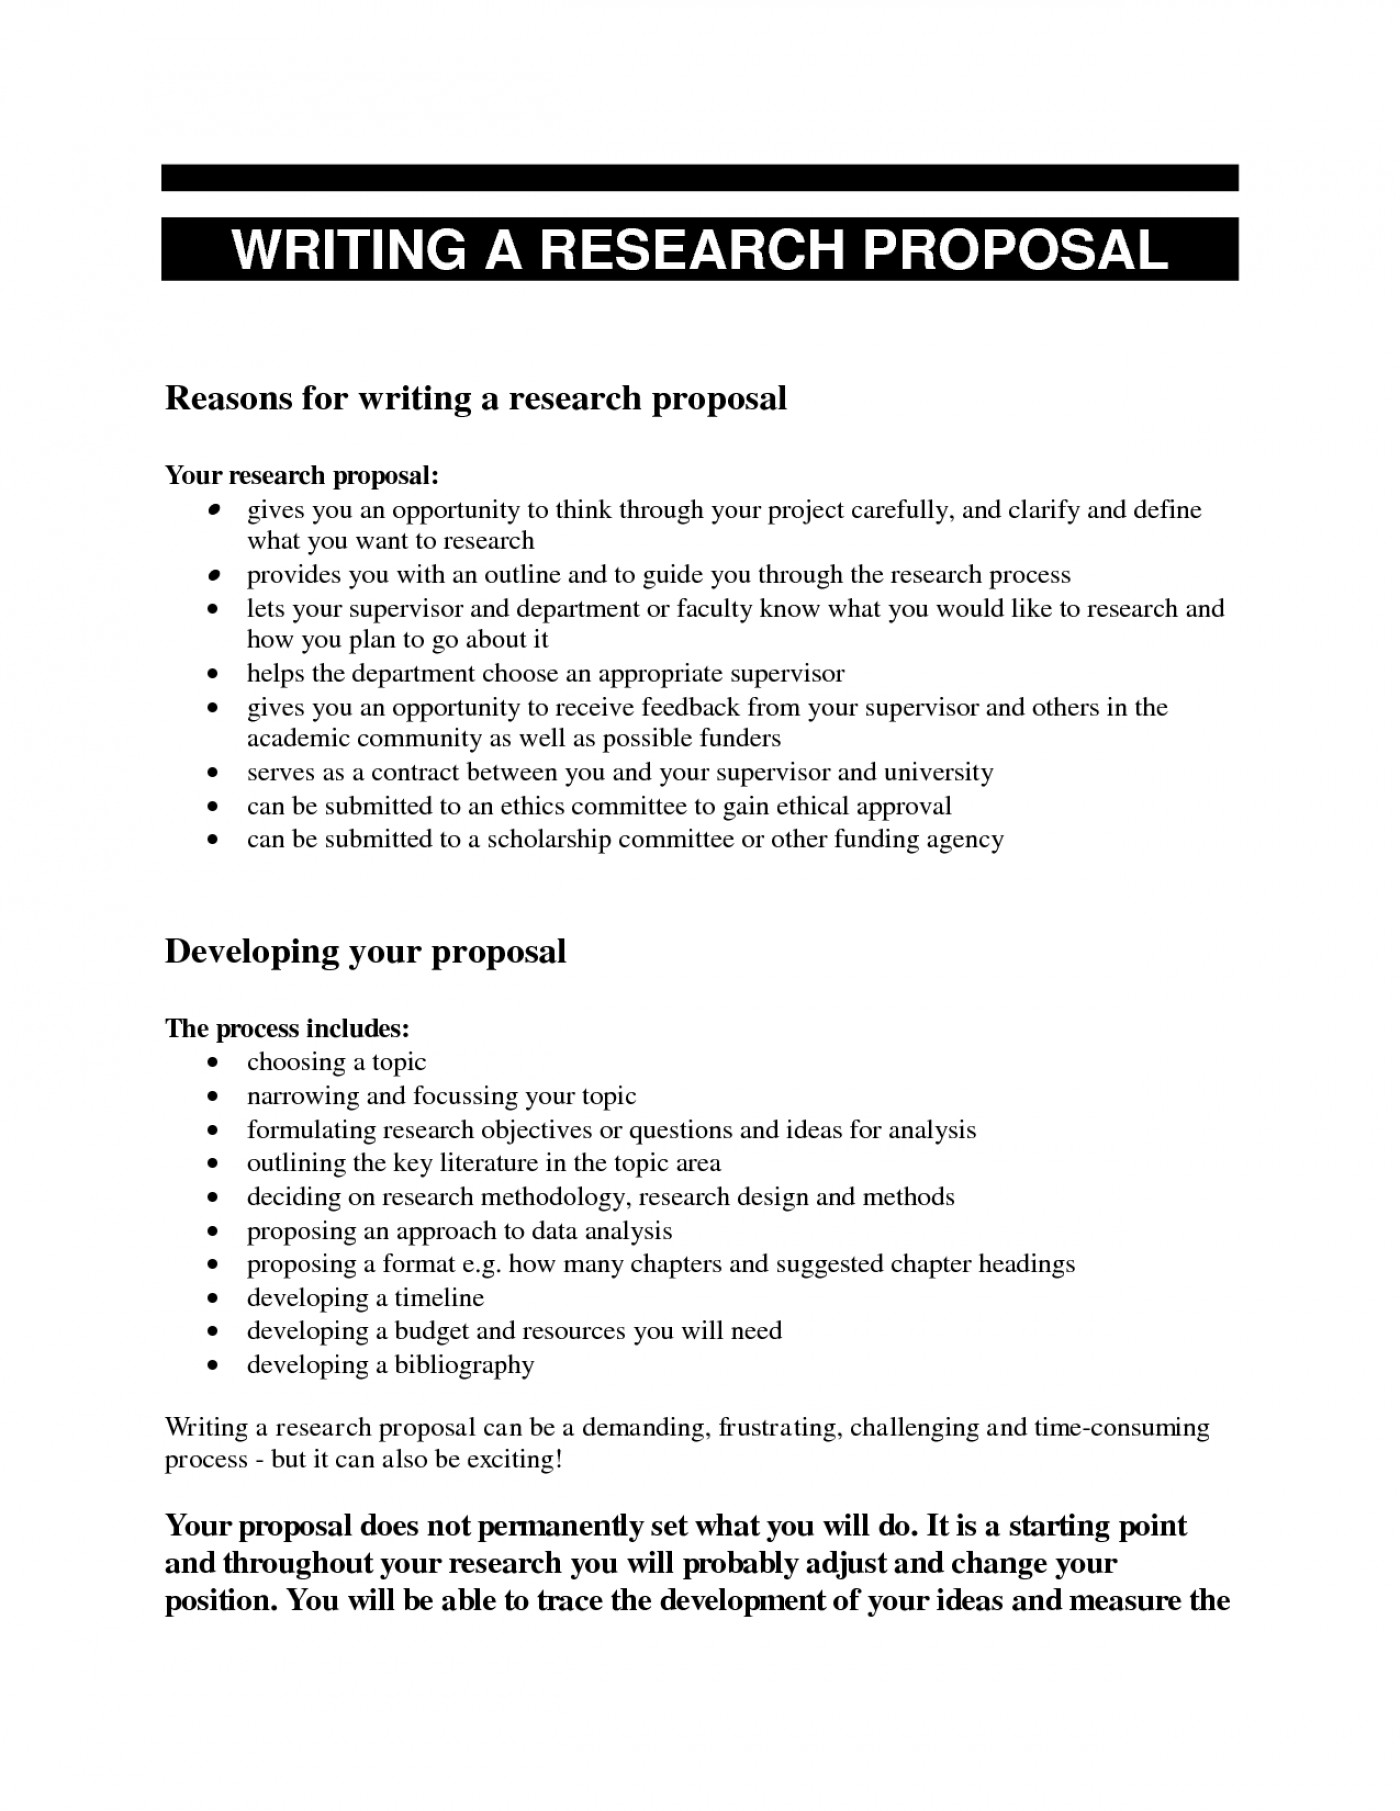 proposal essay example essays examples how to write business    research proposal essay topics questions paper example thesis ykfu  pdf high school turabian chicago apa